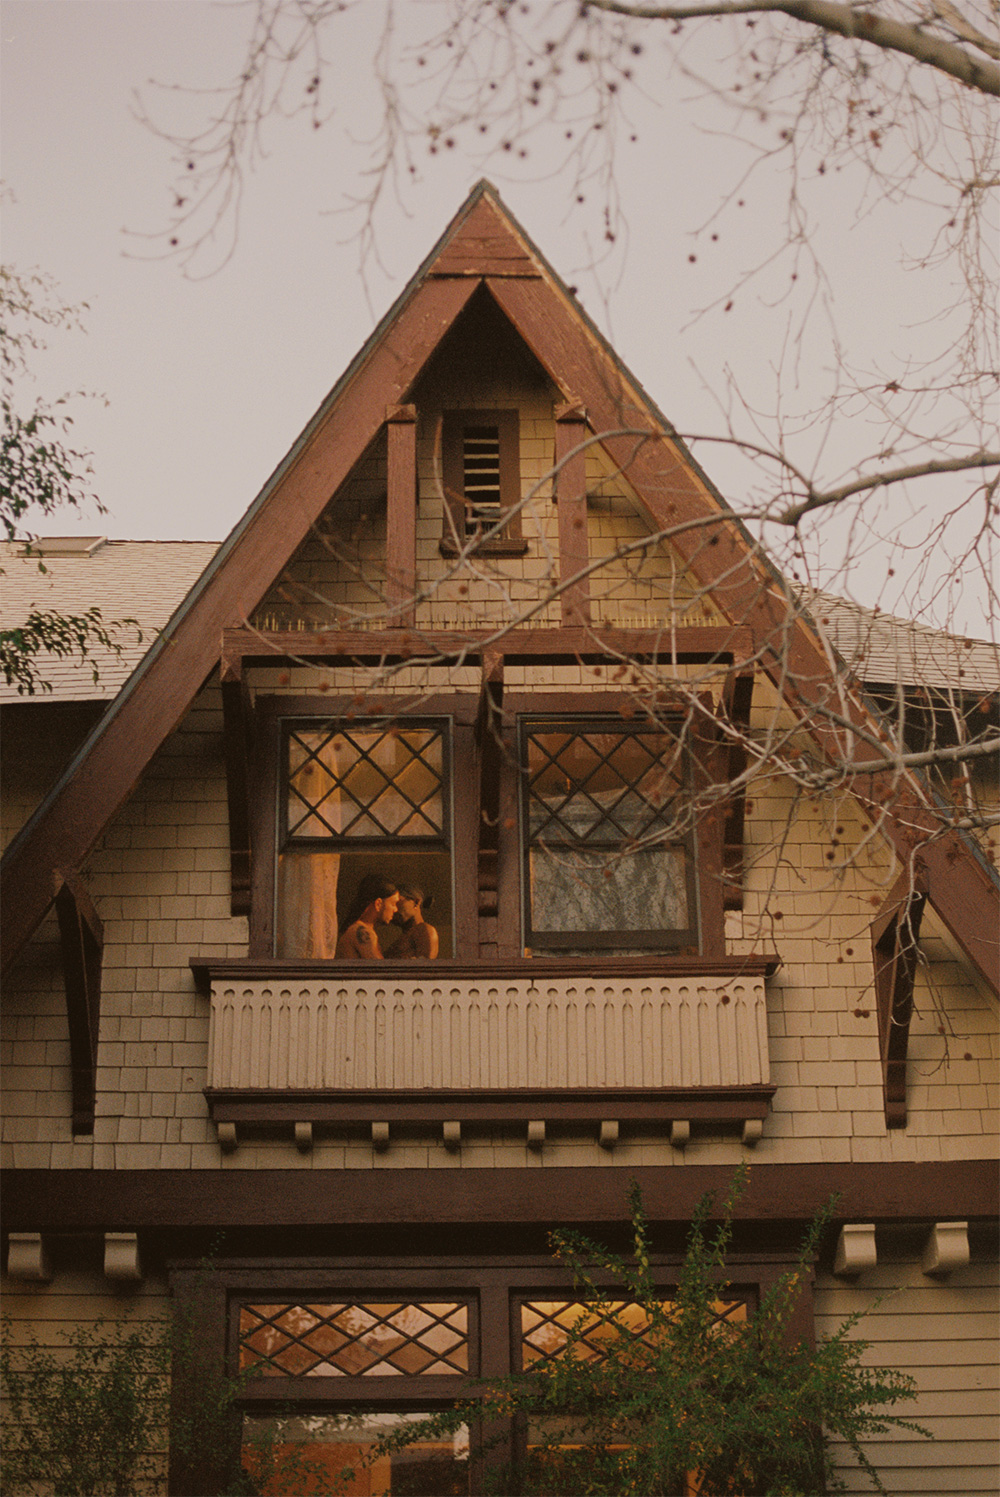 A photograph featuring the top half of a beige and brown paneled house, which centers two windows on the top floor. One of the windows is open, and has a sand-colored curtain drawn aside, beyond which two figures are visible from the chest up. The figures have their naked torsos angled towards one another and their faces touching. The other window is covered by a gray material.